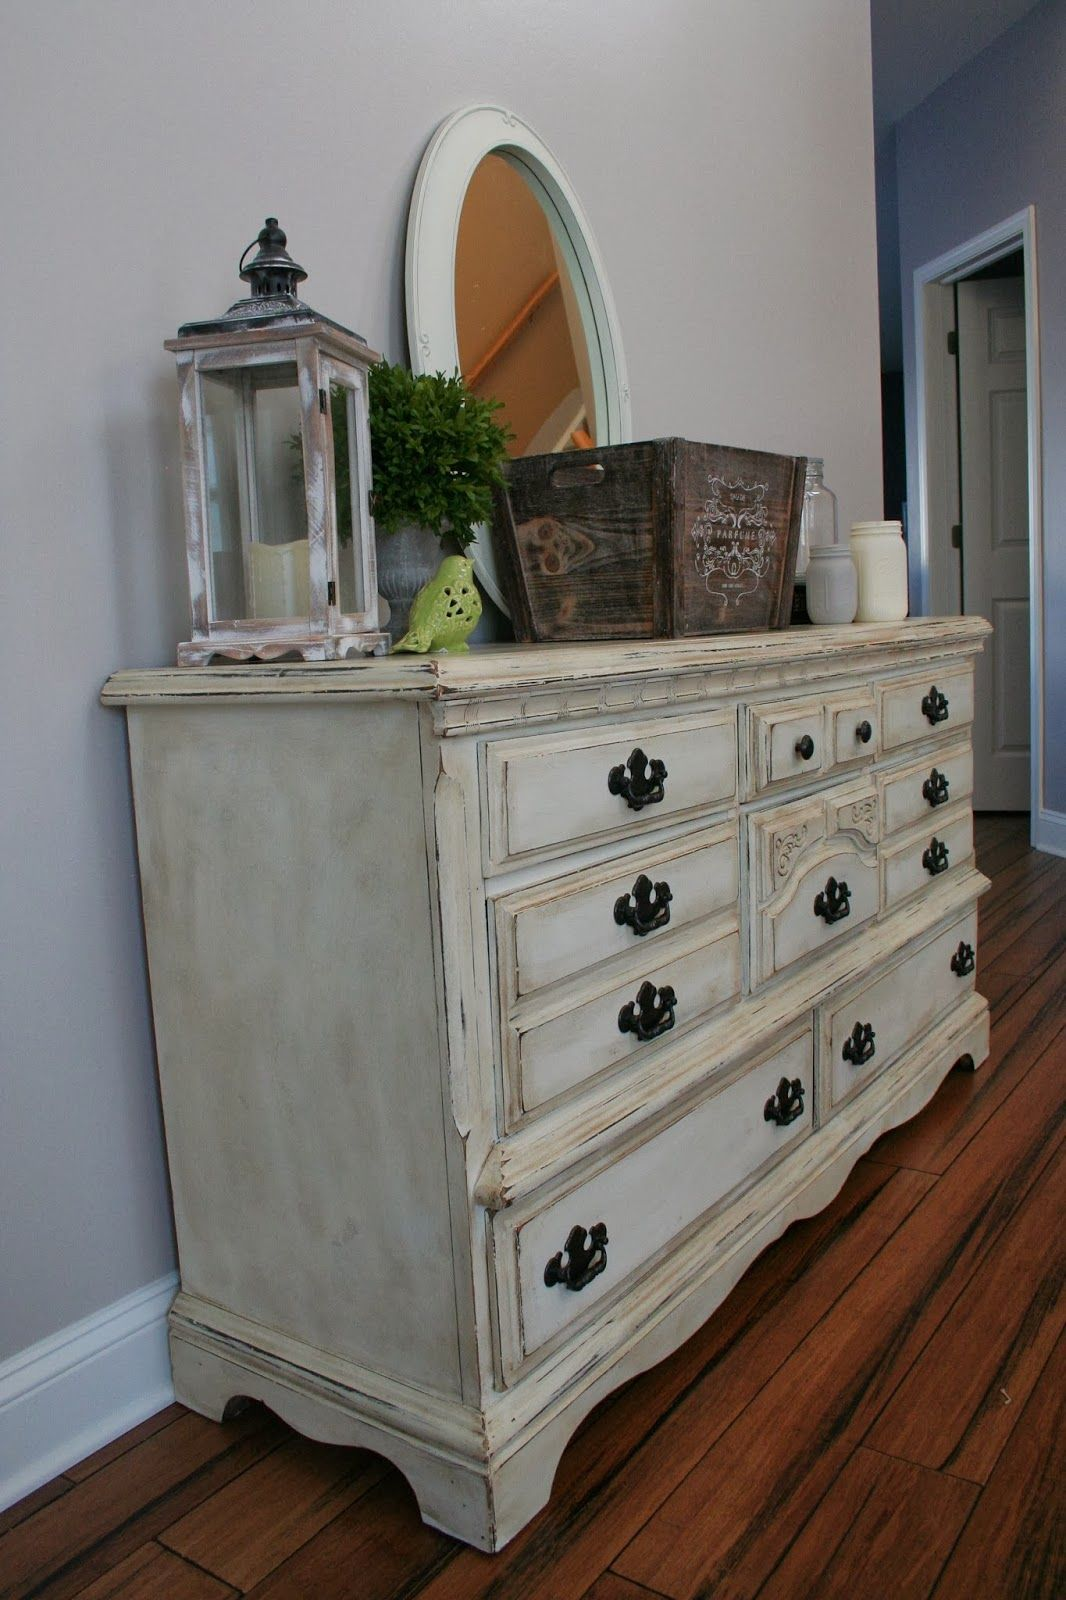 Annie Sloan Chalk Paint in Old White with heavy